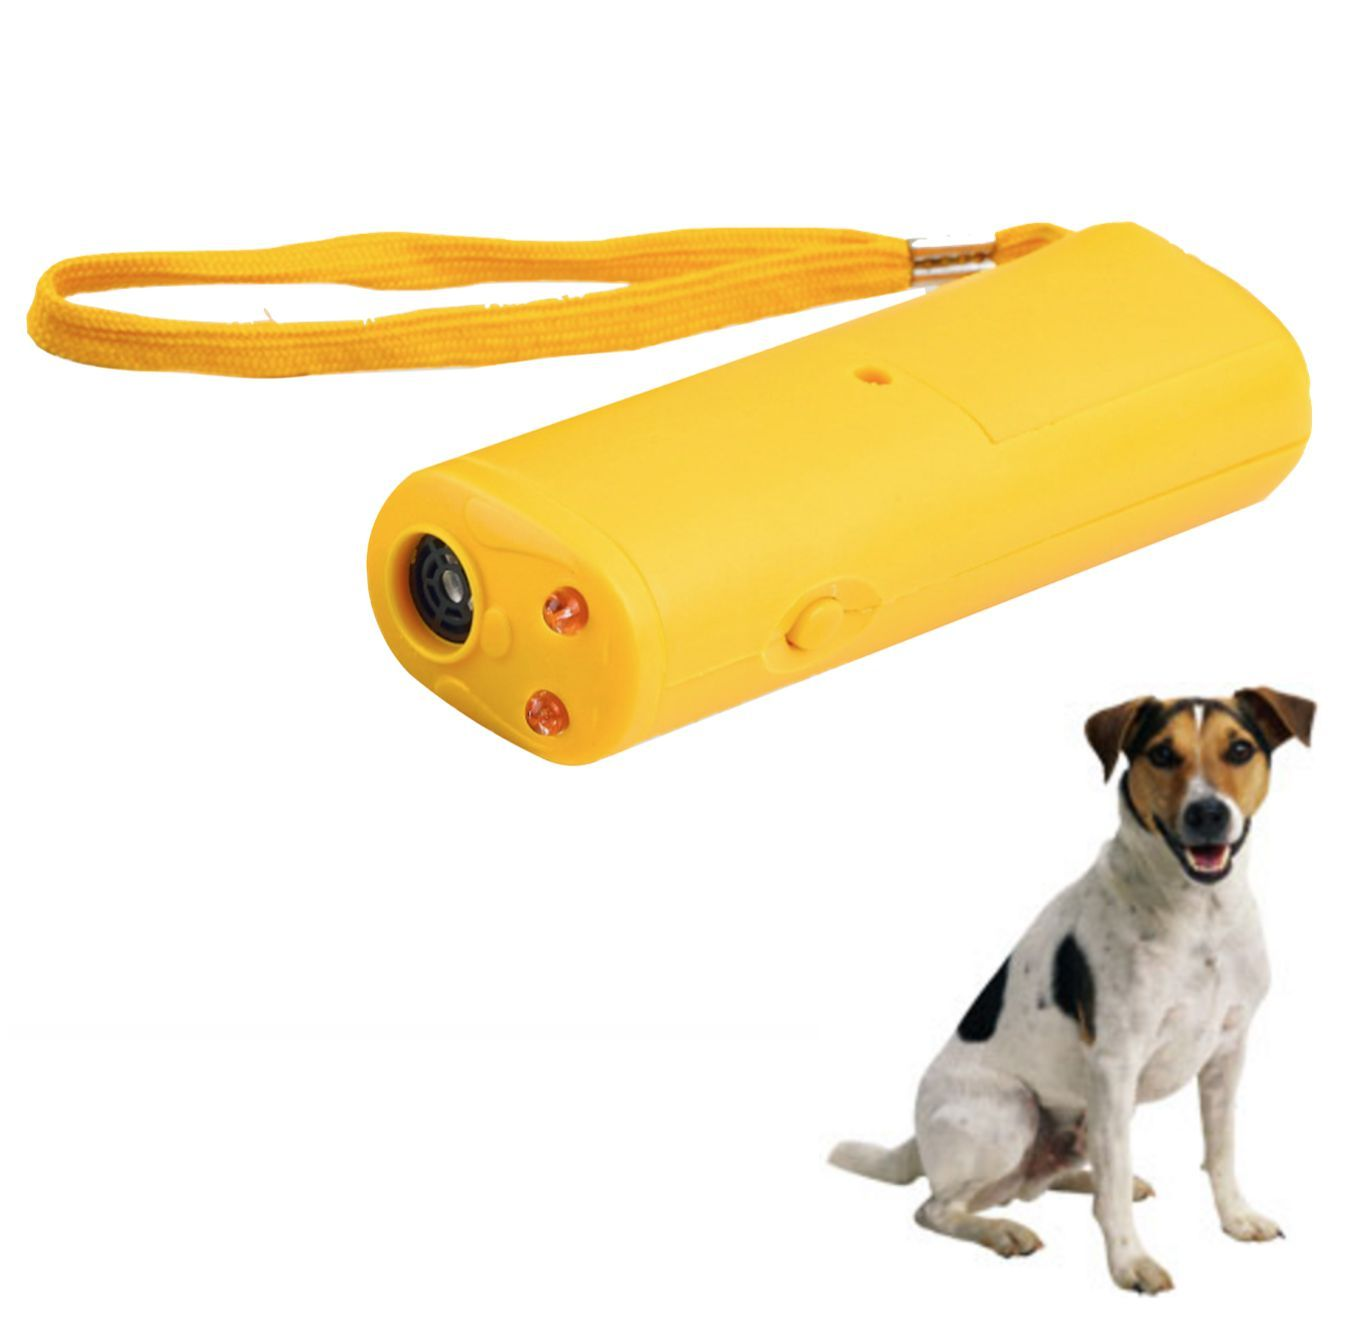 This awesome device stops Dog Barking by emitting a high